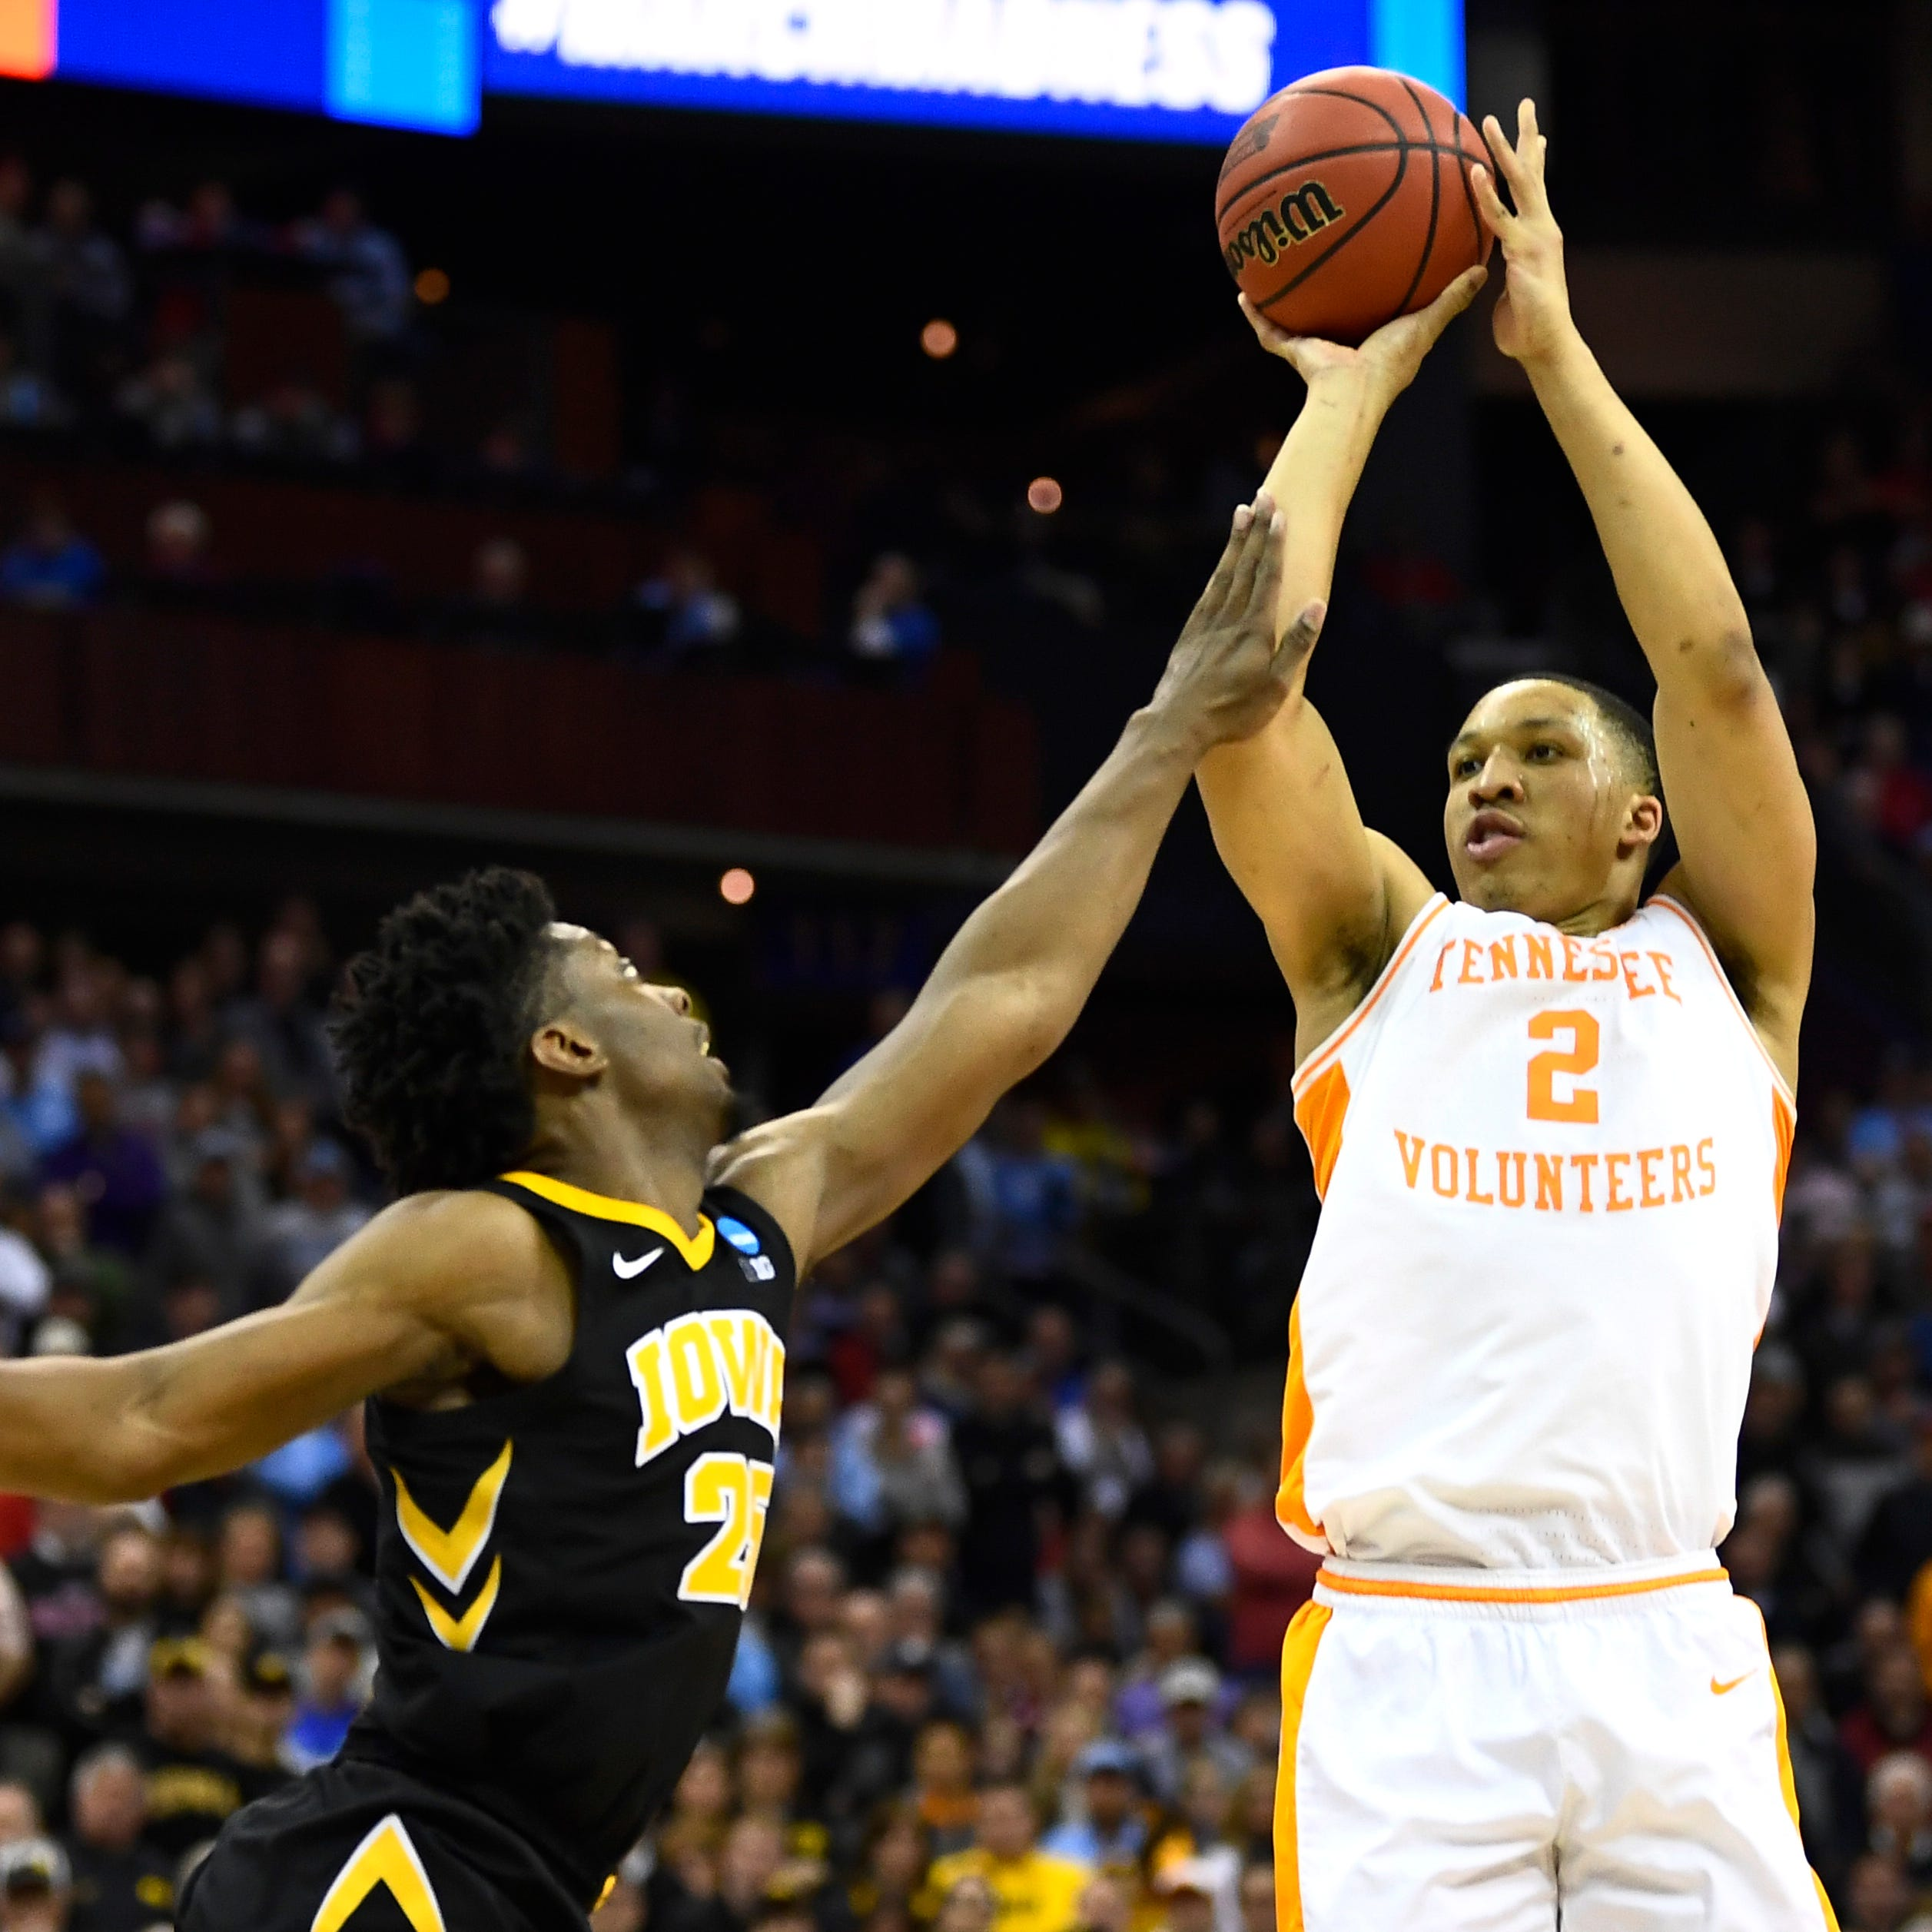 Tennessee basketball: Grant Williams enters NBA Draft but leaves door open to play senior season